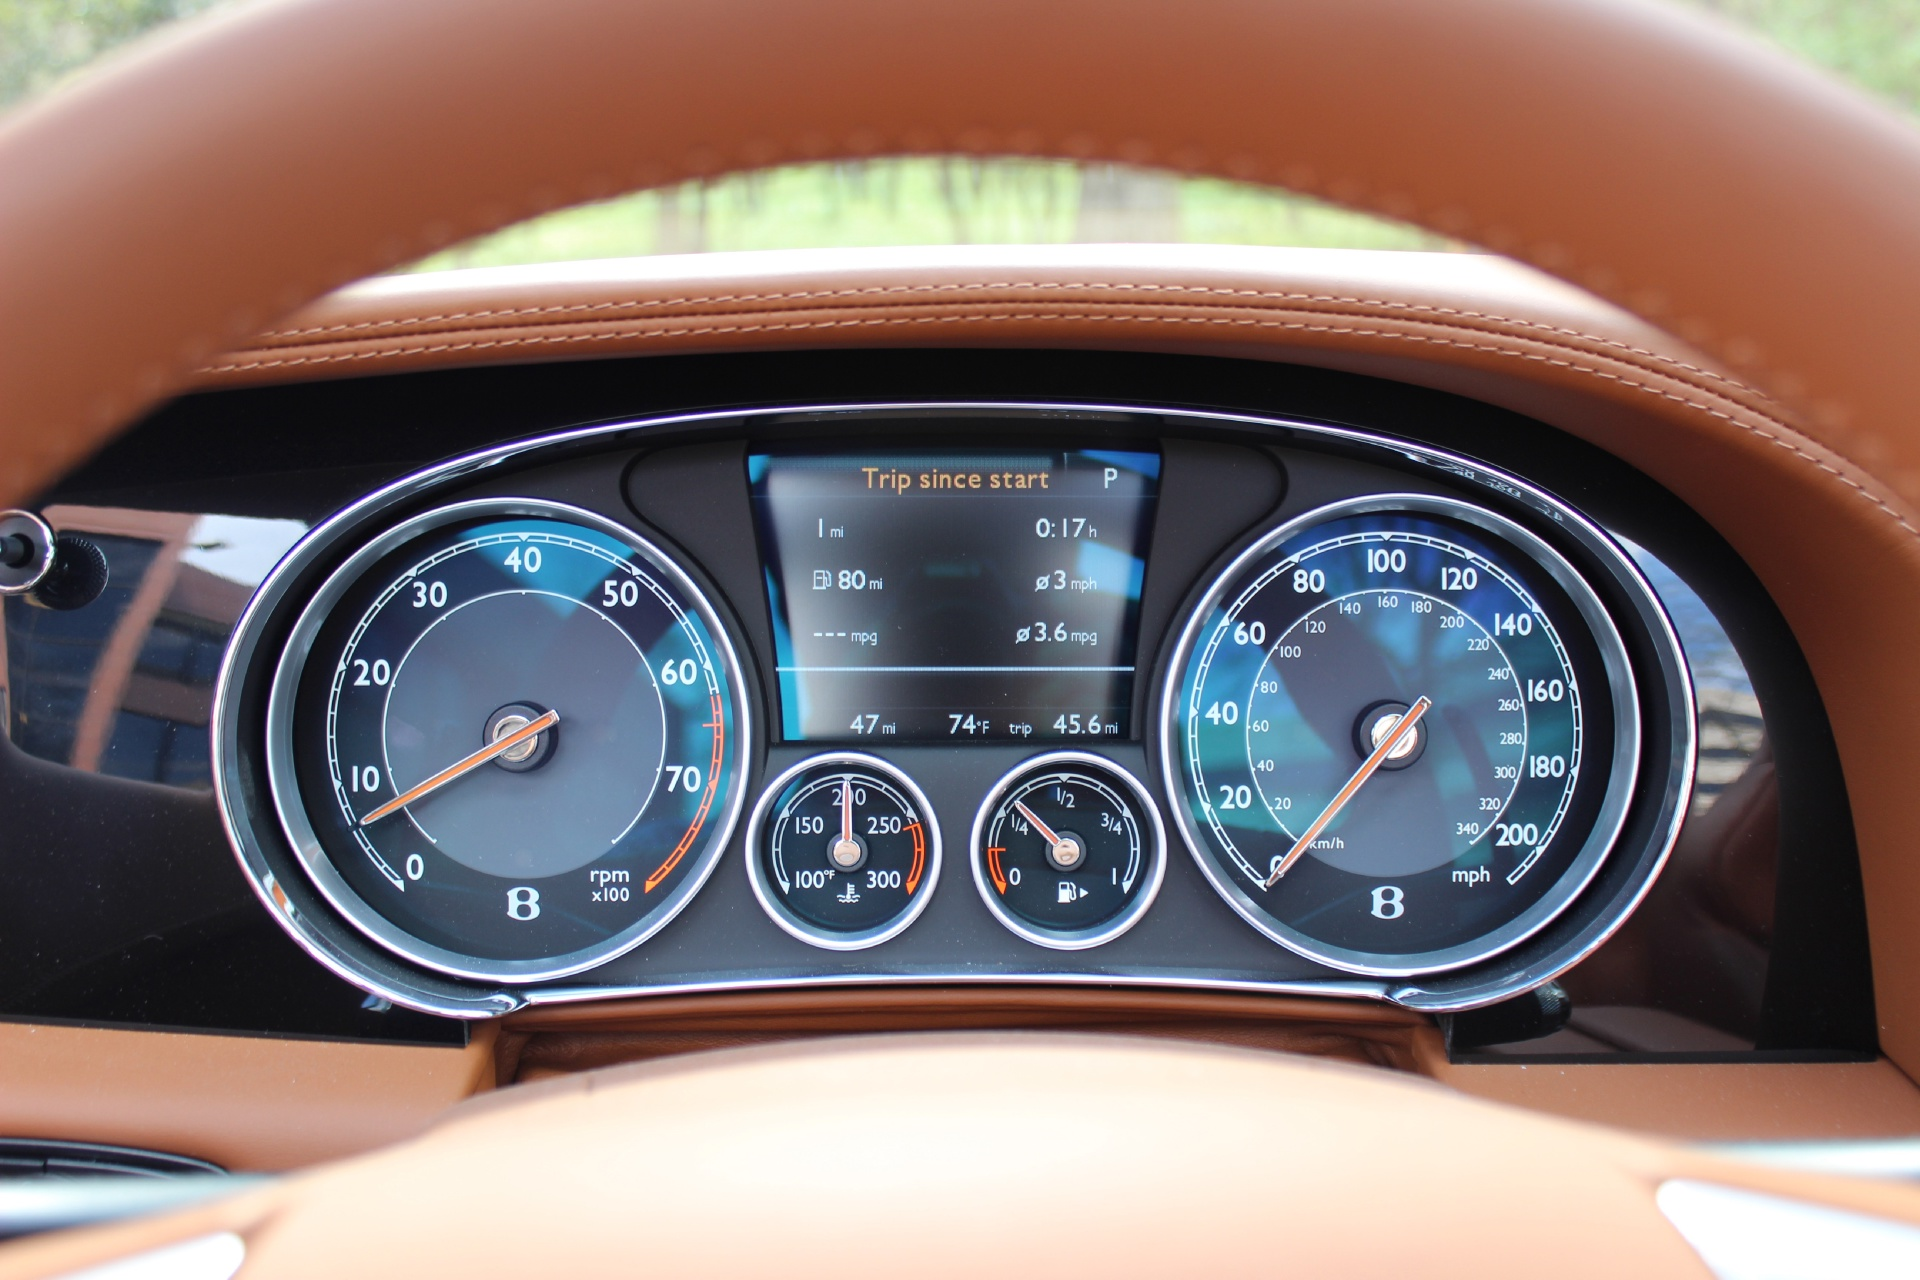 2015 Bentley Continental GTC V8 S Stock 5NC for sale near